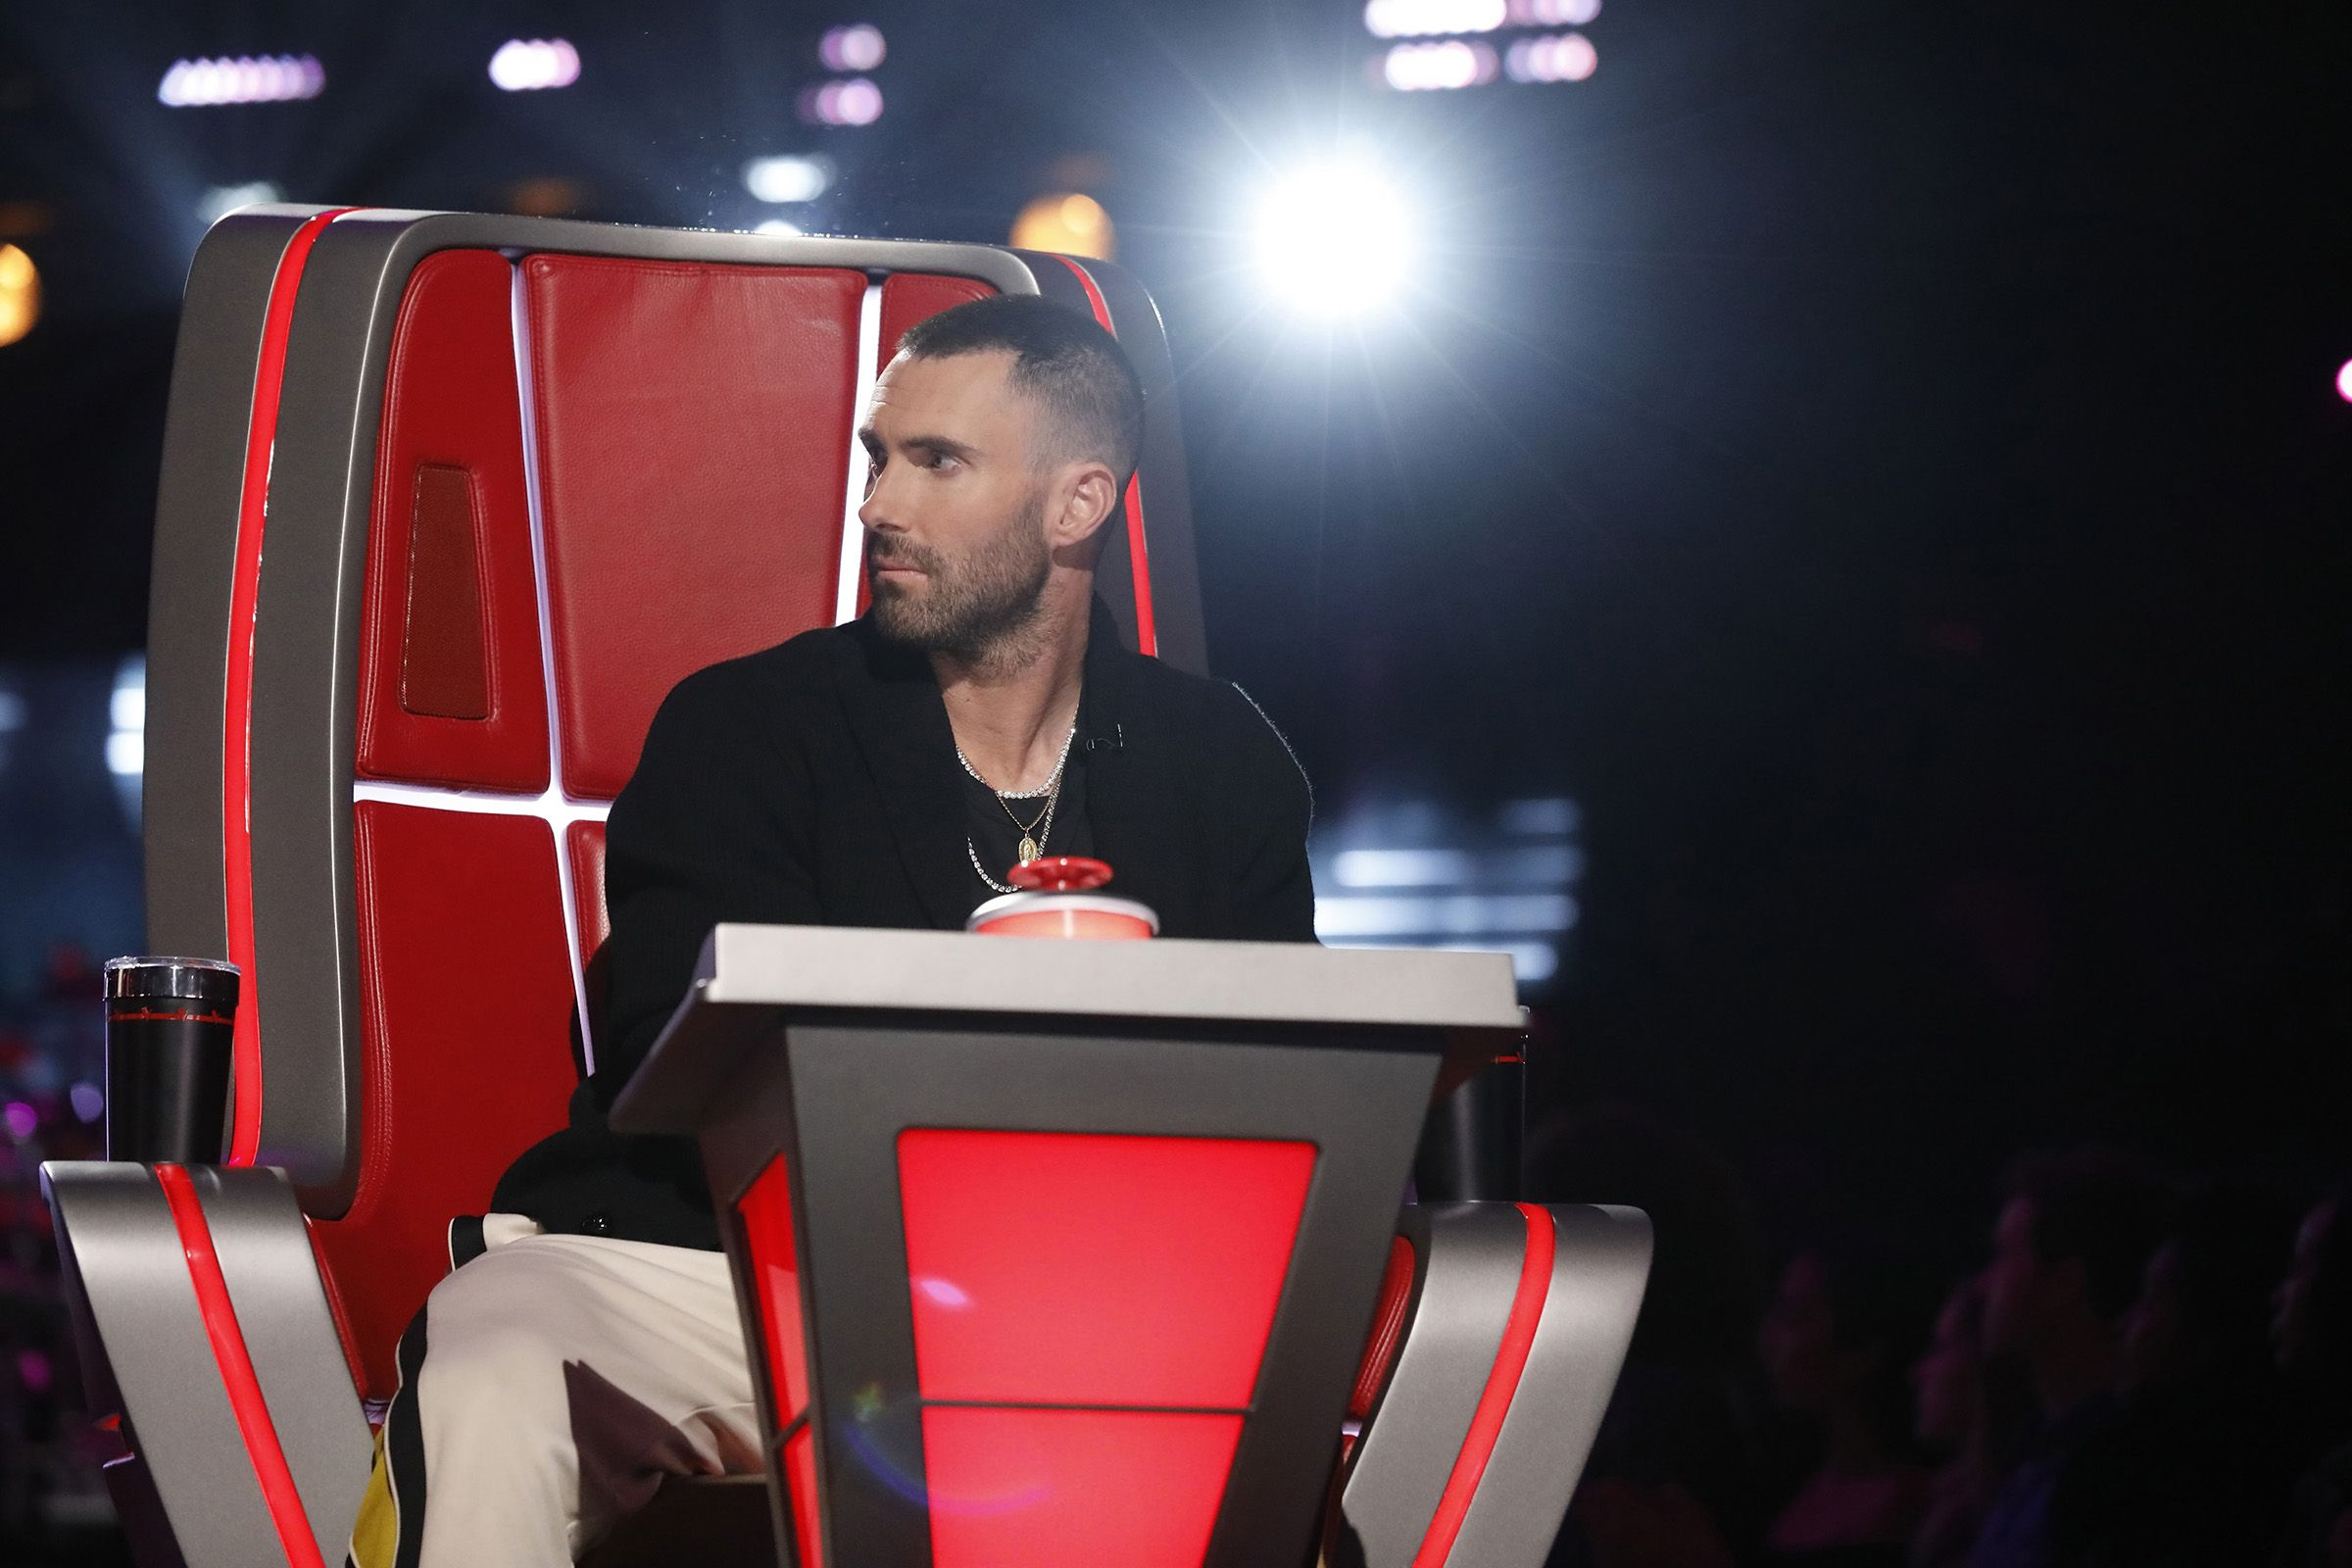 'The Voice' Coach Adam Levine Breaks His Silence After His Shocking Exit